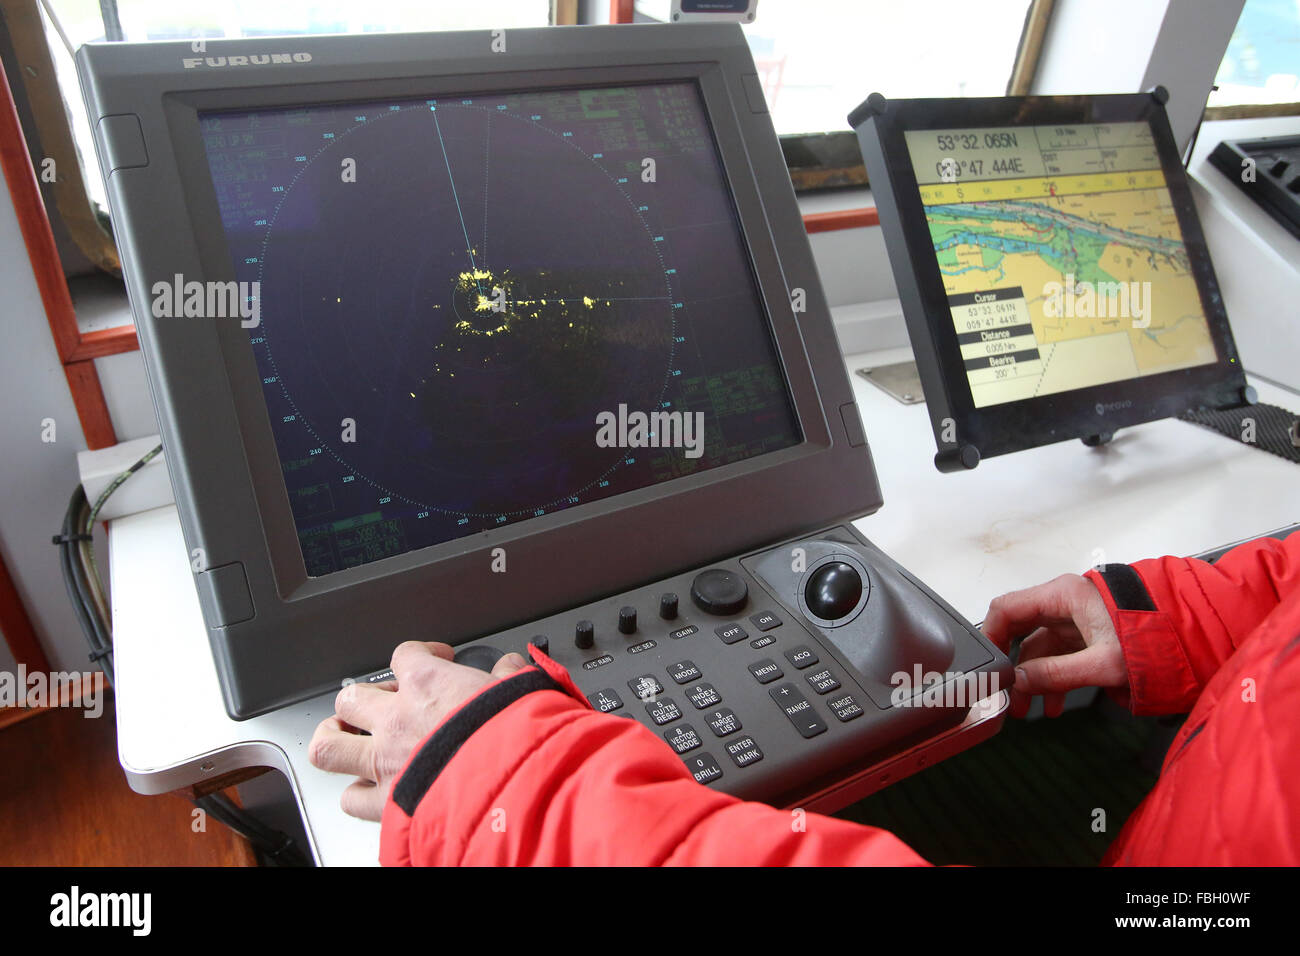 Hamburg, Germany. 8th Jan, 2016. A crew memnber is testing a radar system onboard the former research vessel 'Clupea' - Stock Image